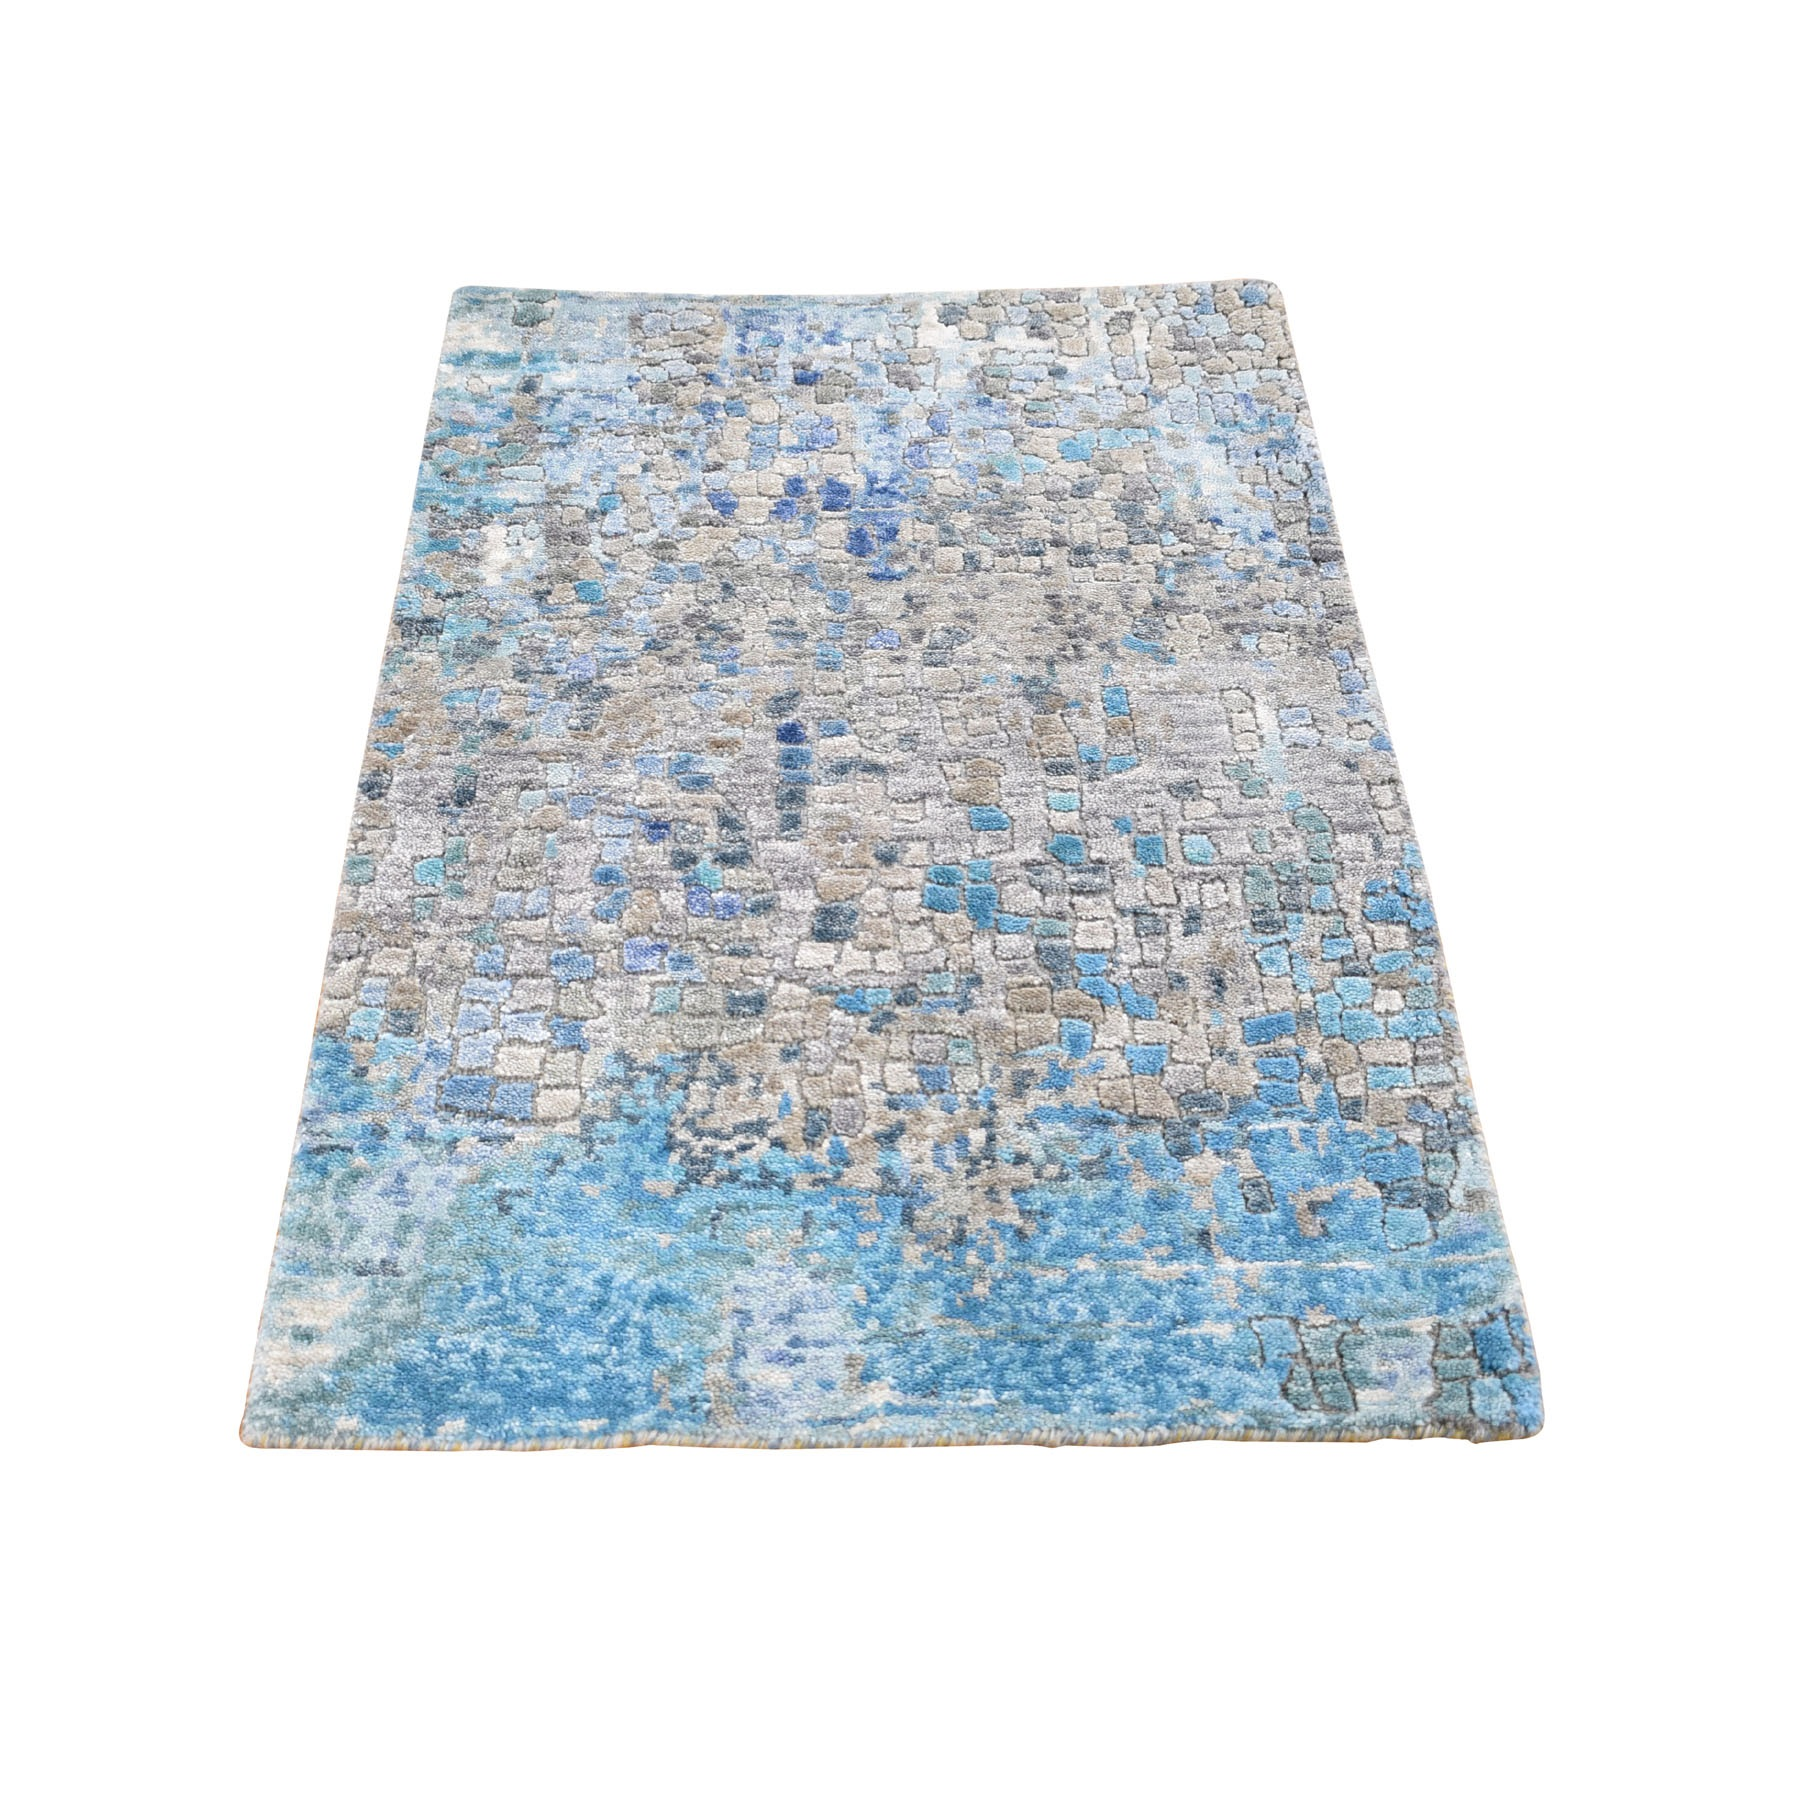 2'x3' Abstract Mosaic Wool And Silk Hand Woven Oriental Rug